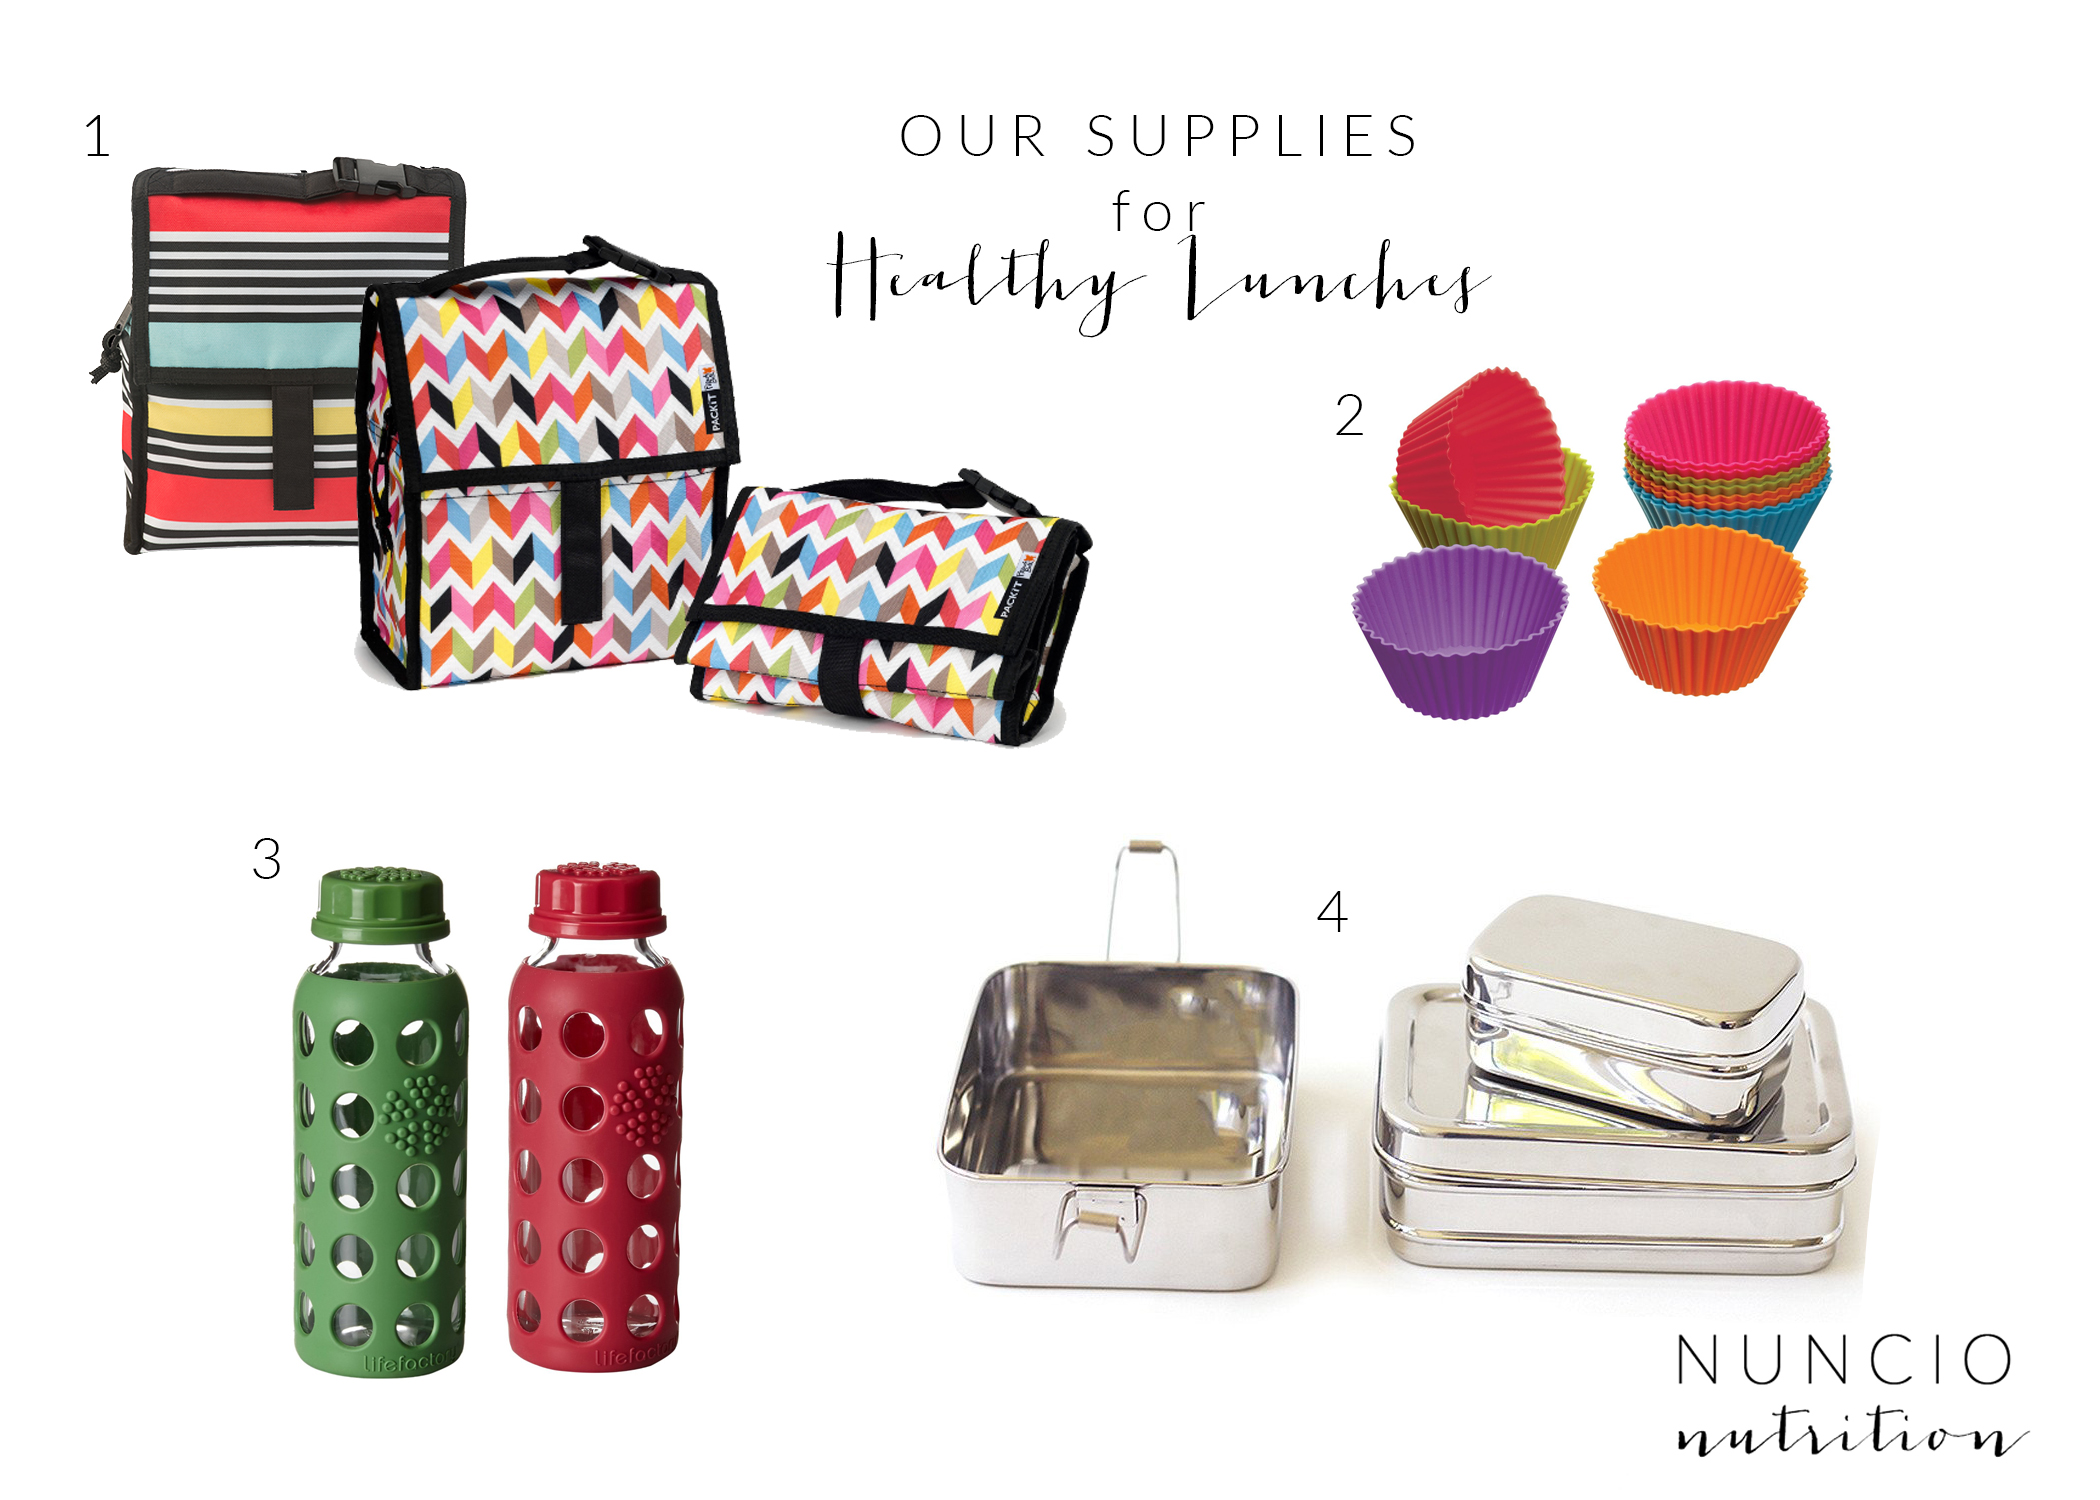 Nuncio Nutrition - Our Supplies for Healthy Lunches